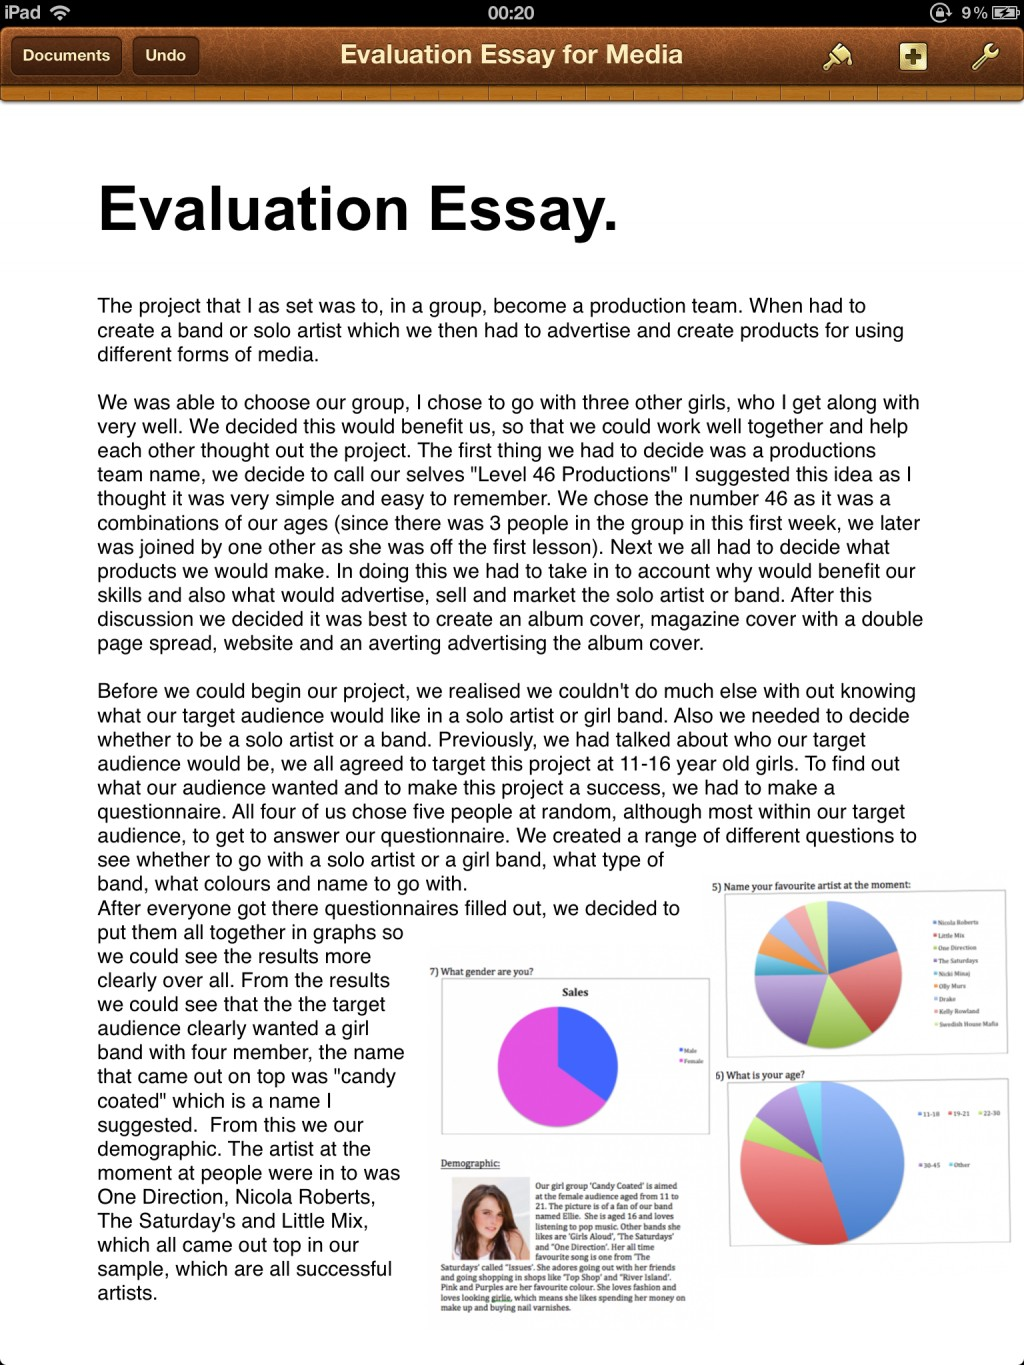 015 How To Write An Evaluation Essay Pg Outstanding Sample On A Movie Restaurant Large